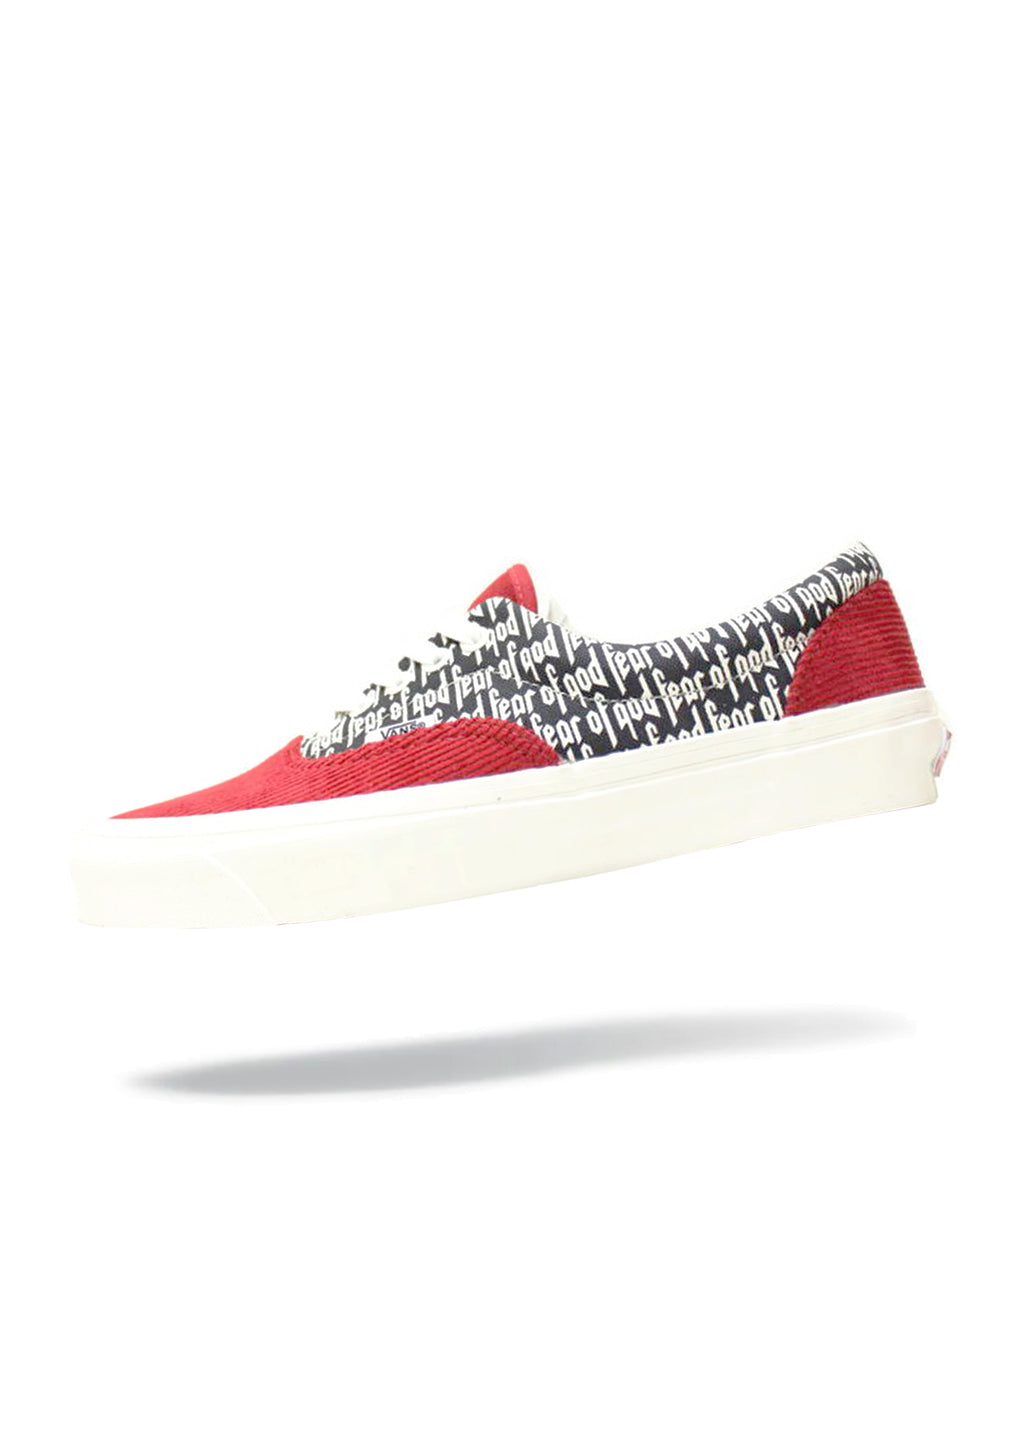 Vans Era 95 DX Fear of God Red